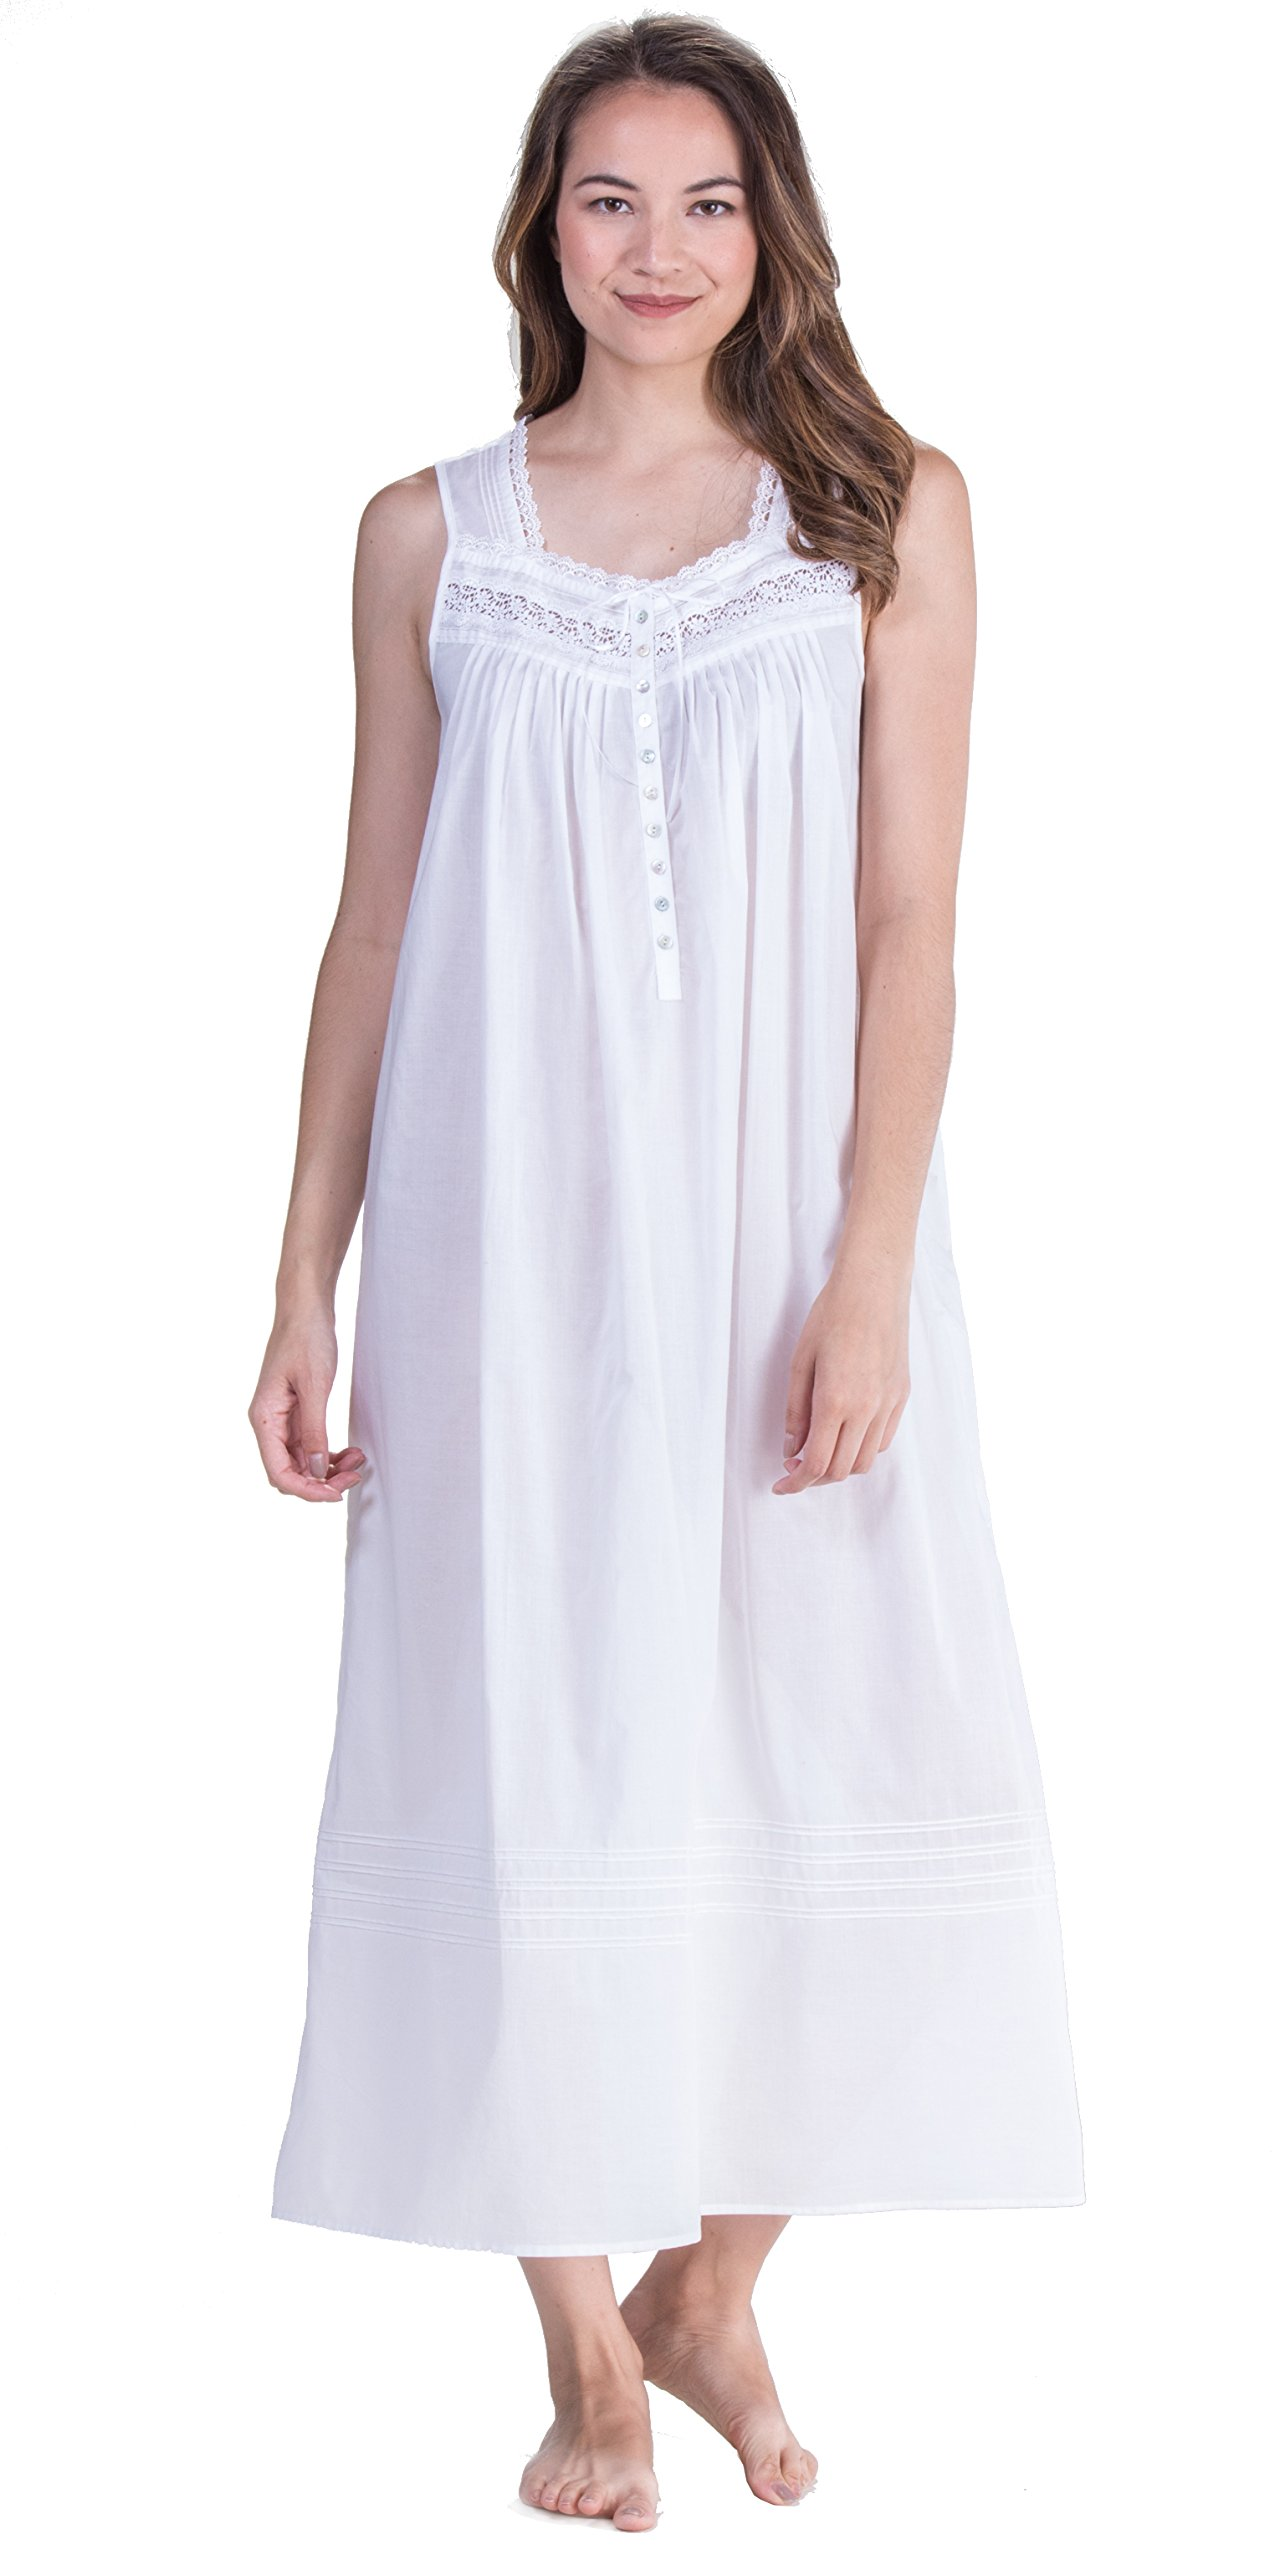 Eileen West Peignoir Set by White Cotton Gown & Robe In Magnolia (White, Large) by Eileen West (Image #3)